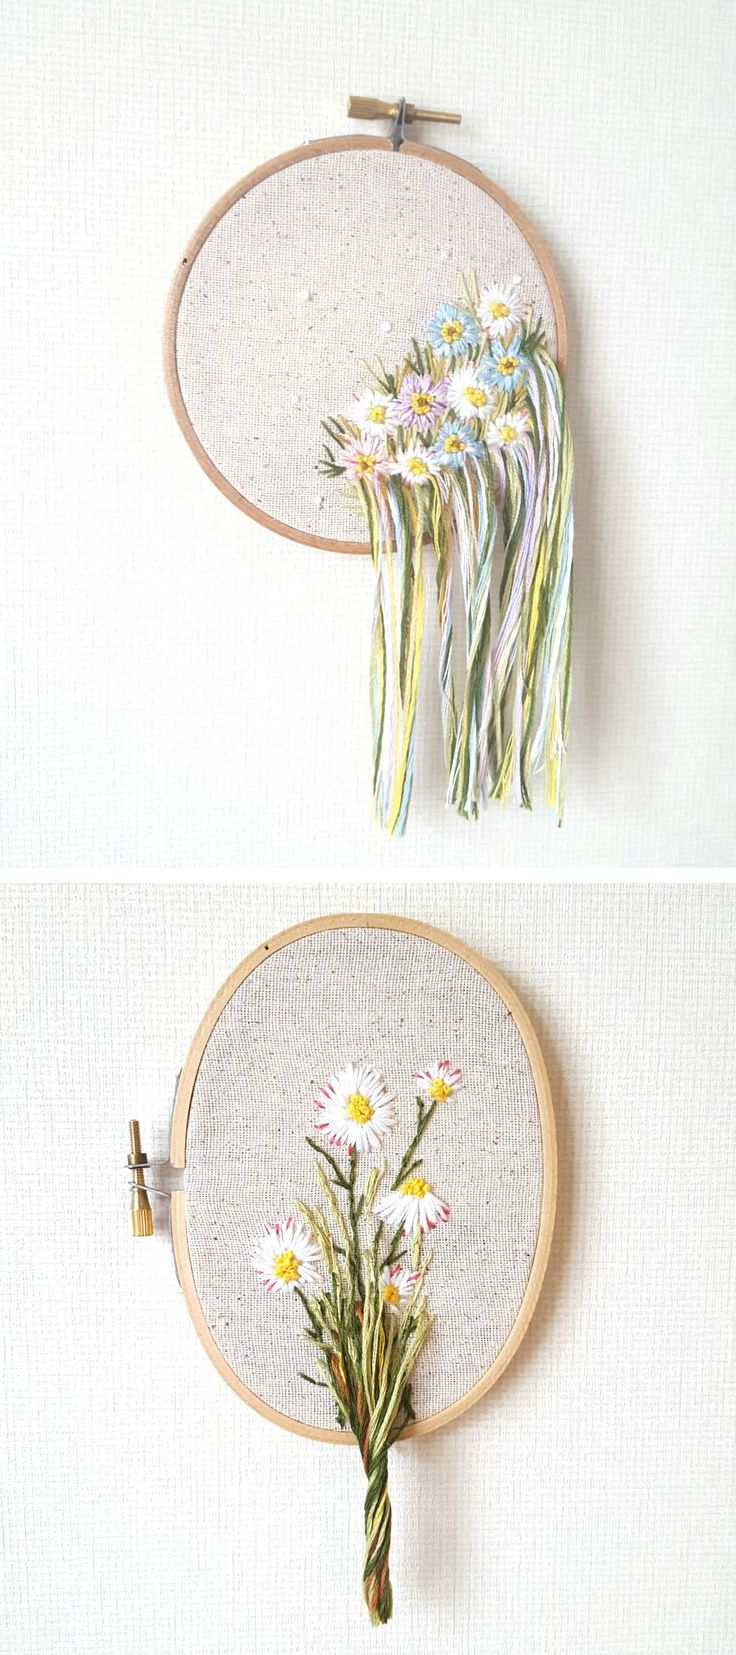 Lou Stitches Shop Hand-stitched embroidery art {sponsored}